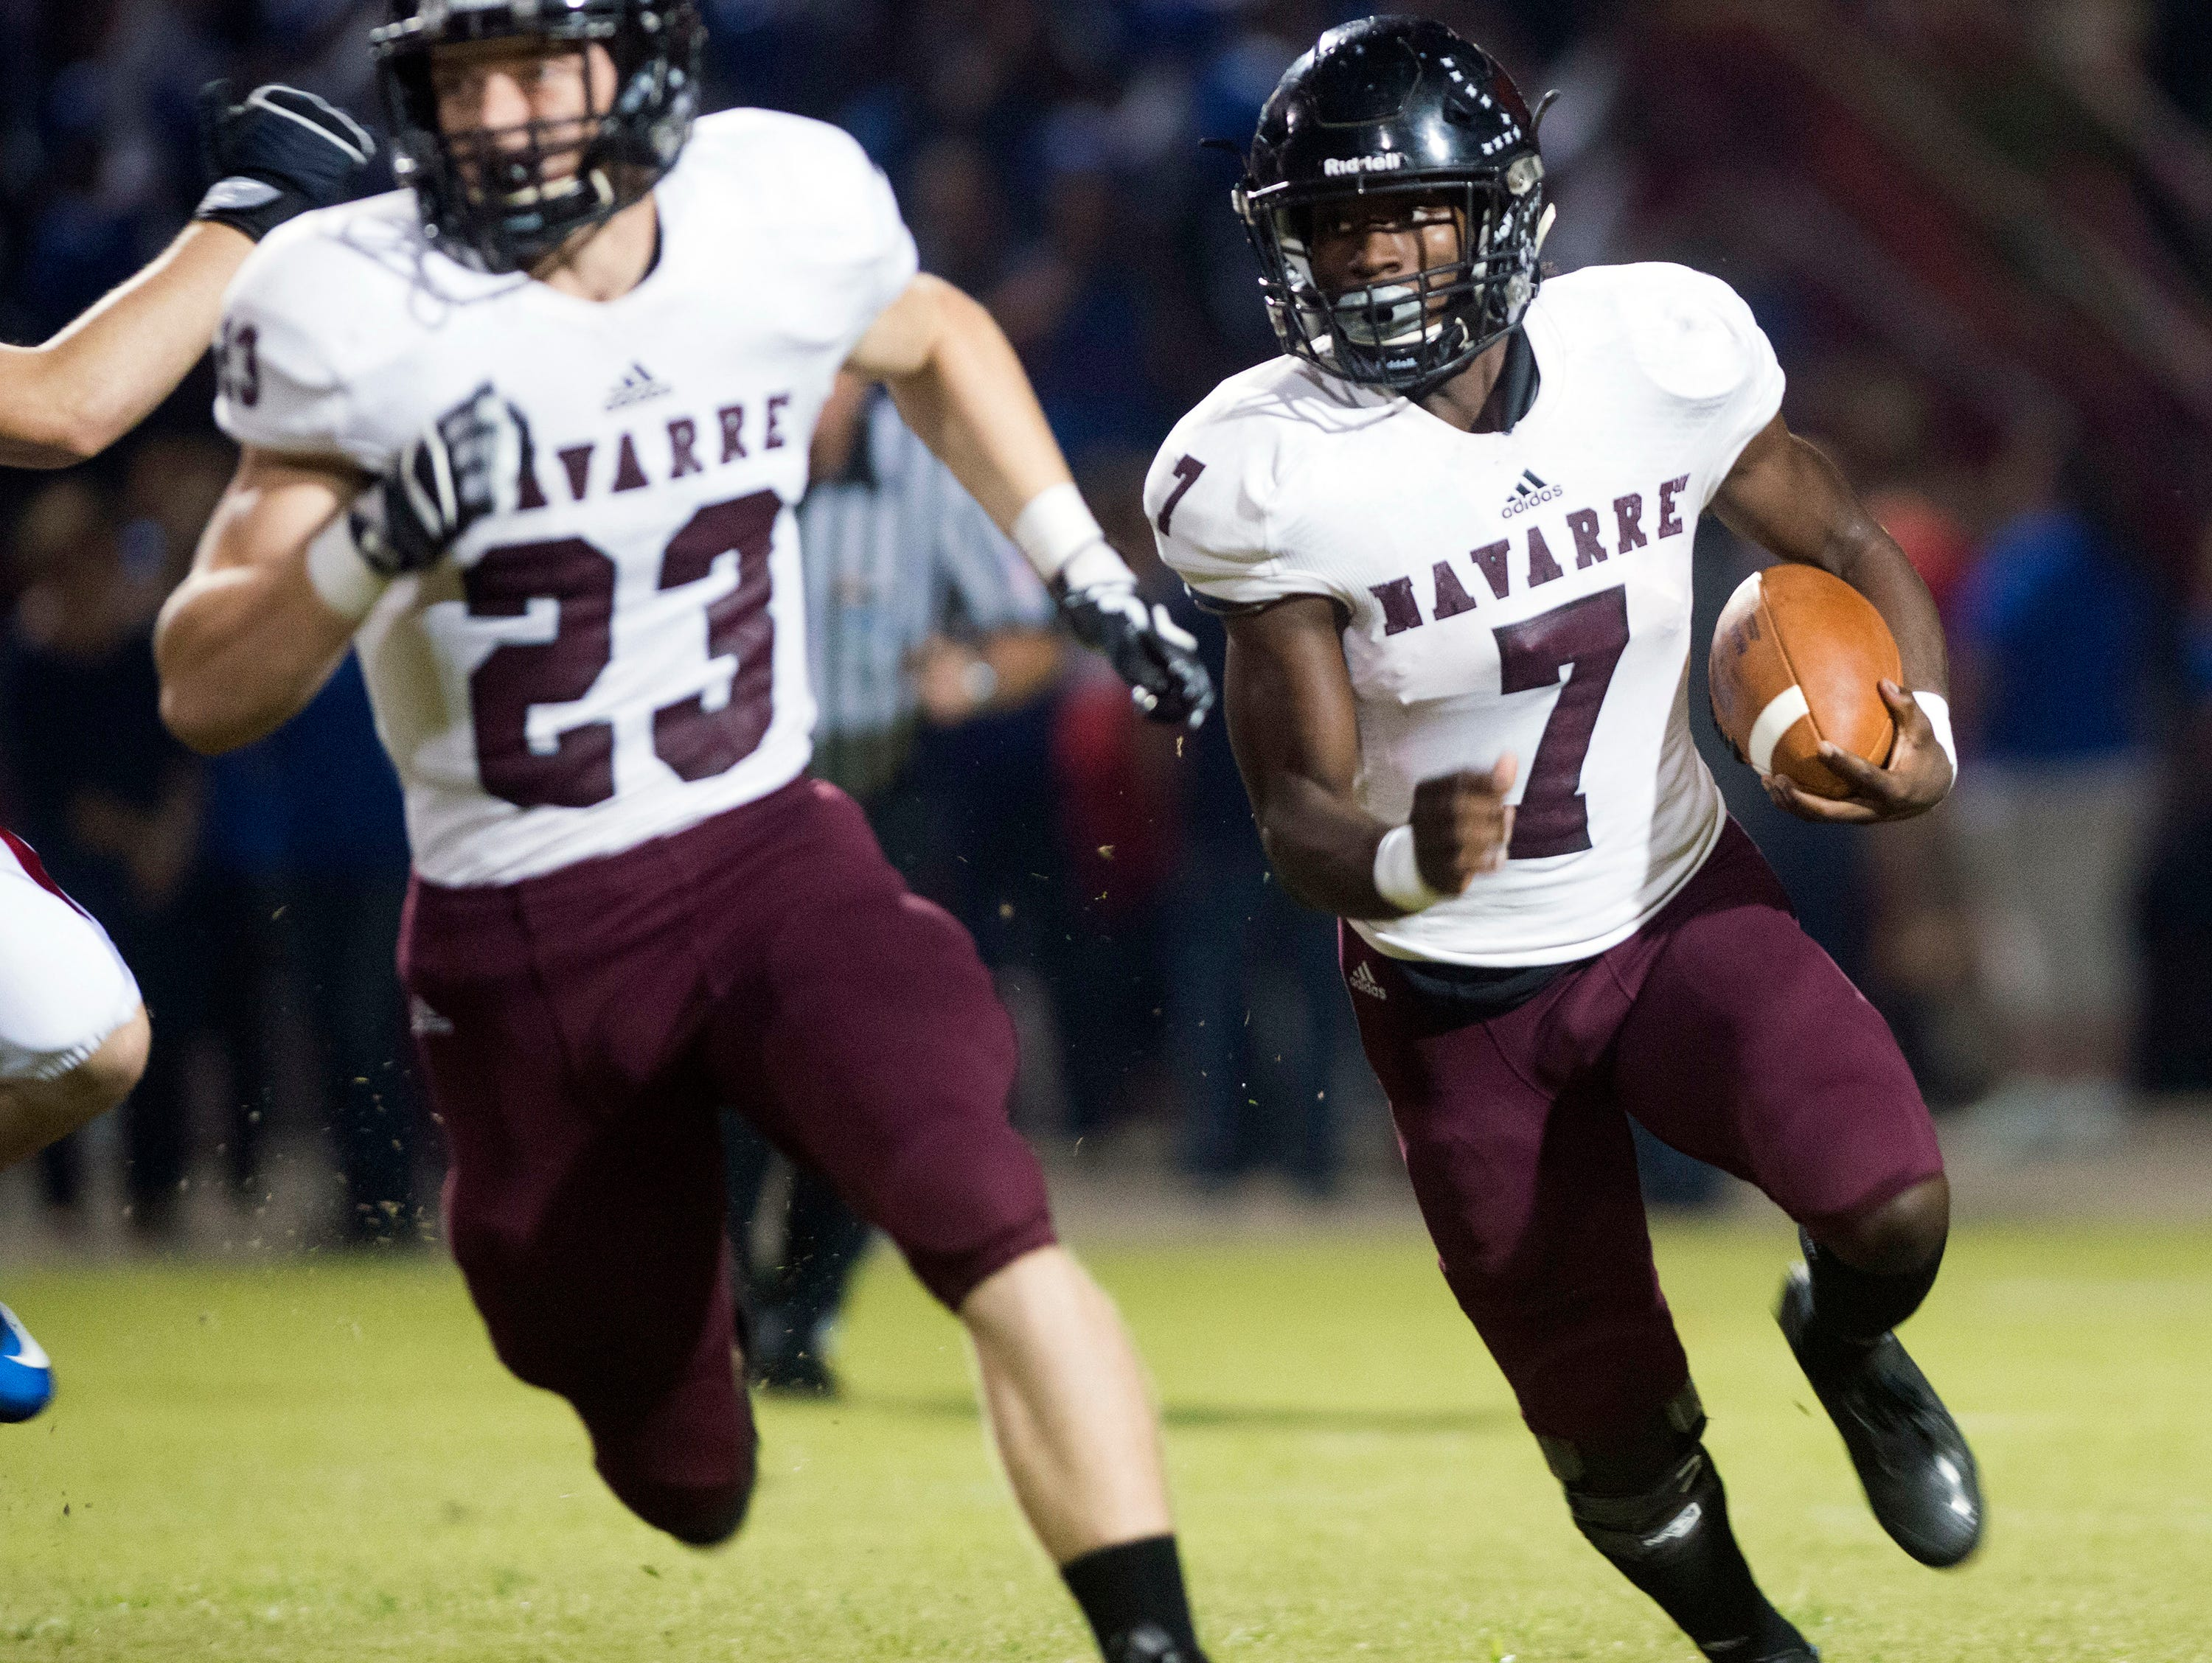 Navarre High School star running back Michael Carter (No. 7) runs for extra yards against the Pace High School defense with help from teammate, Chandler, Cooper, (No. 23) during Friday night's District 2-6A matchup.